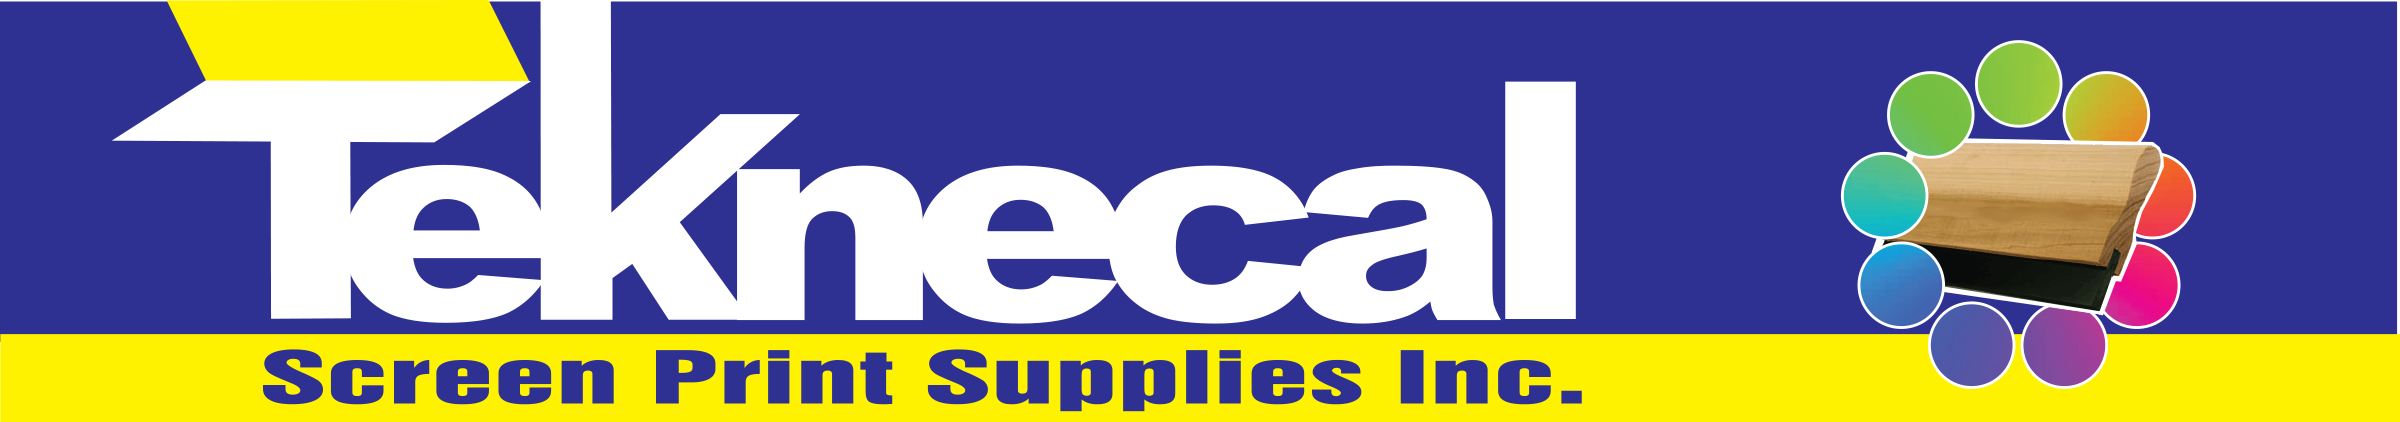 Teknecal Screen Print Supplies Inc